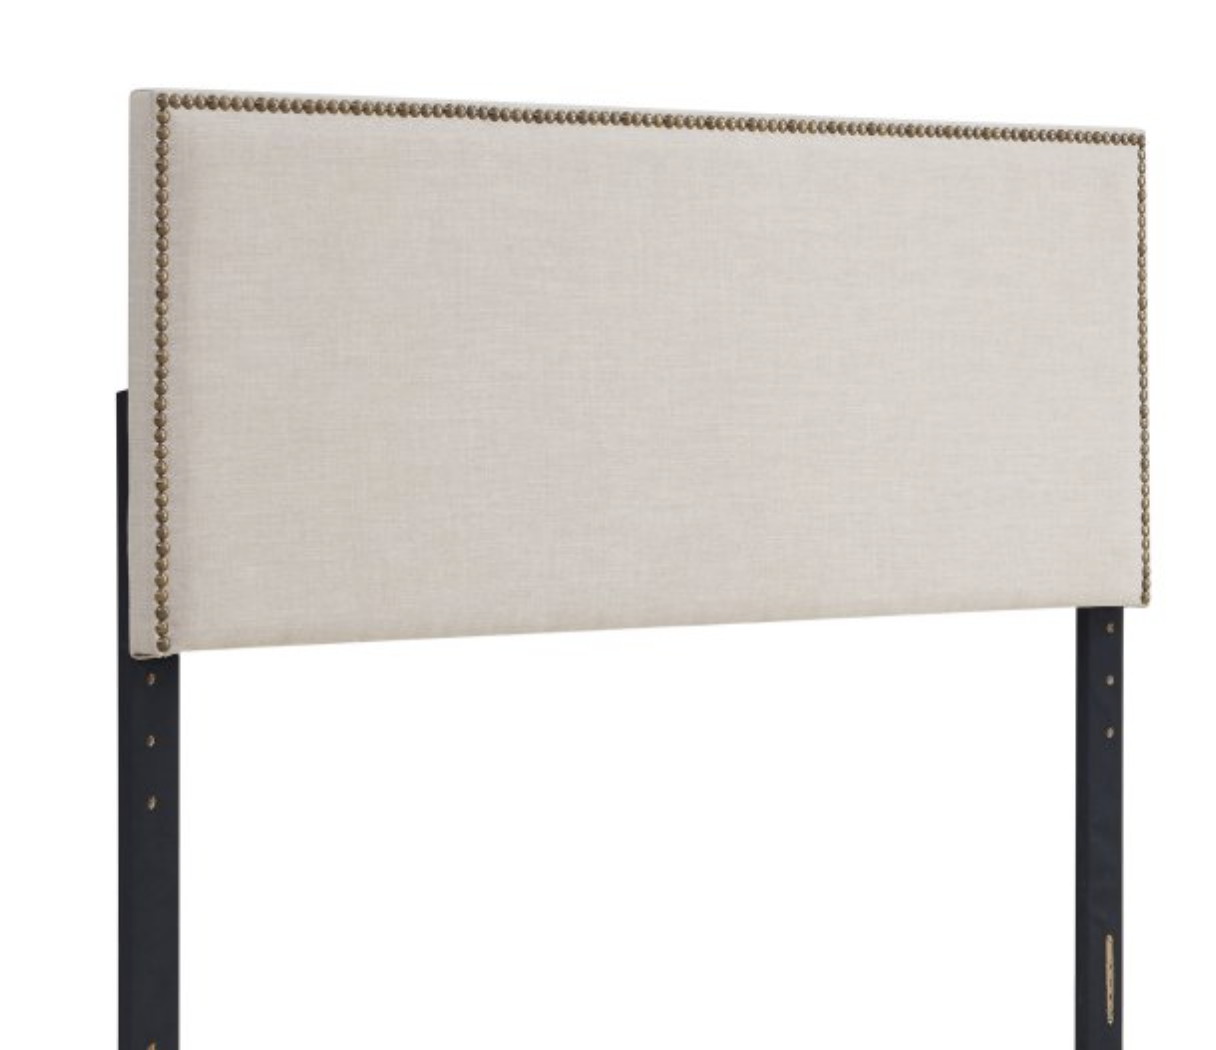 Mainstays Nail Head Trim Contemporary Upholstered